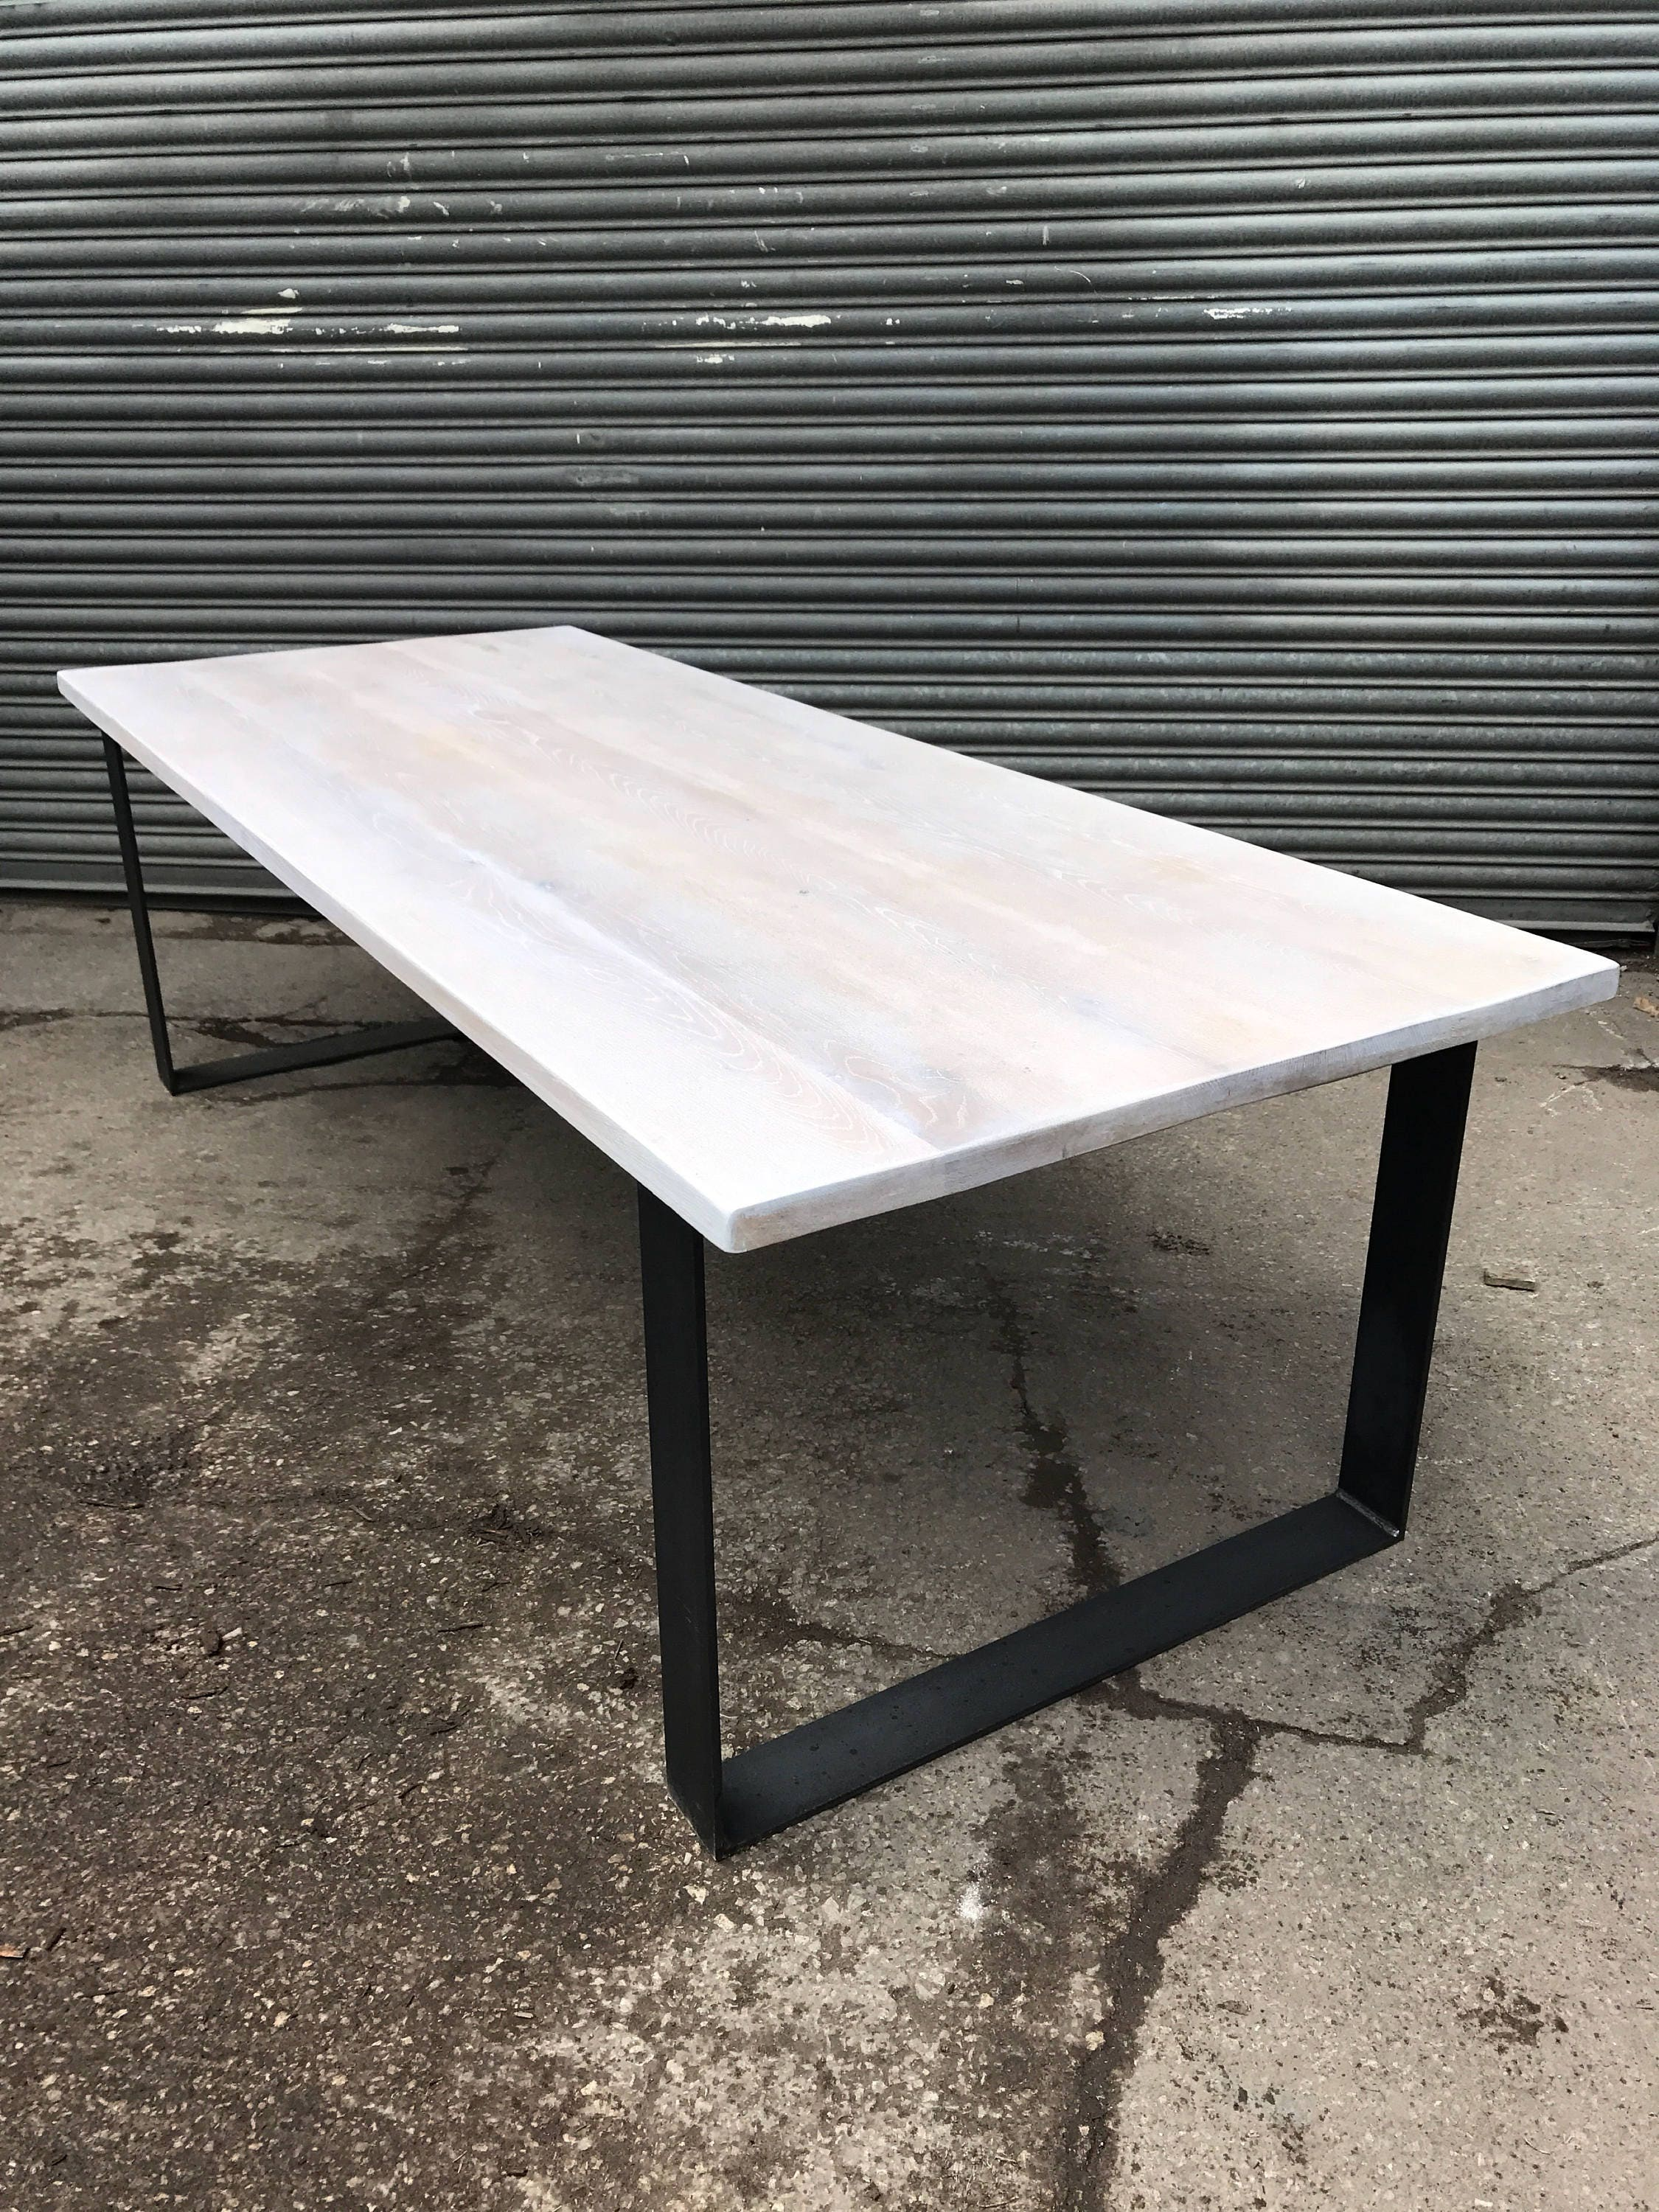 Solid Limed Oak Industrial Chic 8 10 Seater Dining Table   Cafe Restaurant  Furniture Steel Wood Metal Made Measure Reclaimed Full Stave 560